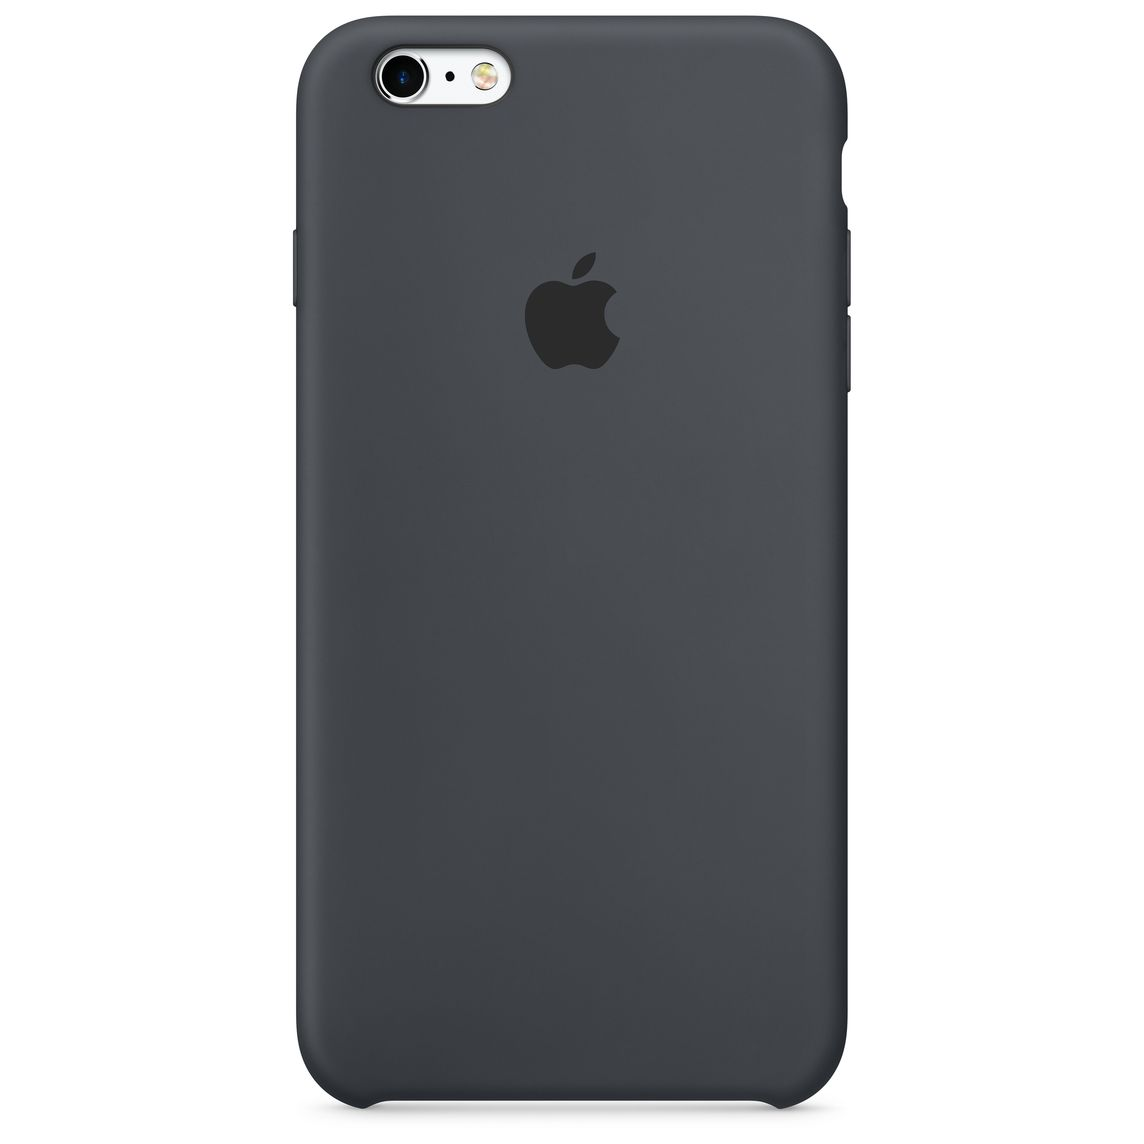 best website a3988 500f9 iPhone 6 Plus / 6s Plus Silicone Case - Charcoal Gray